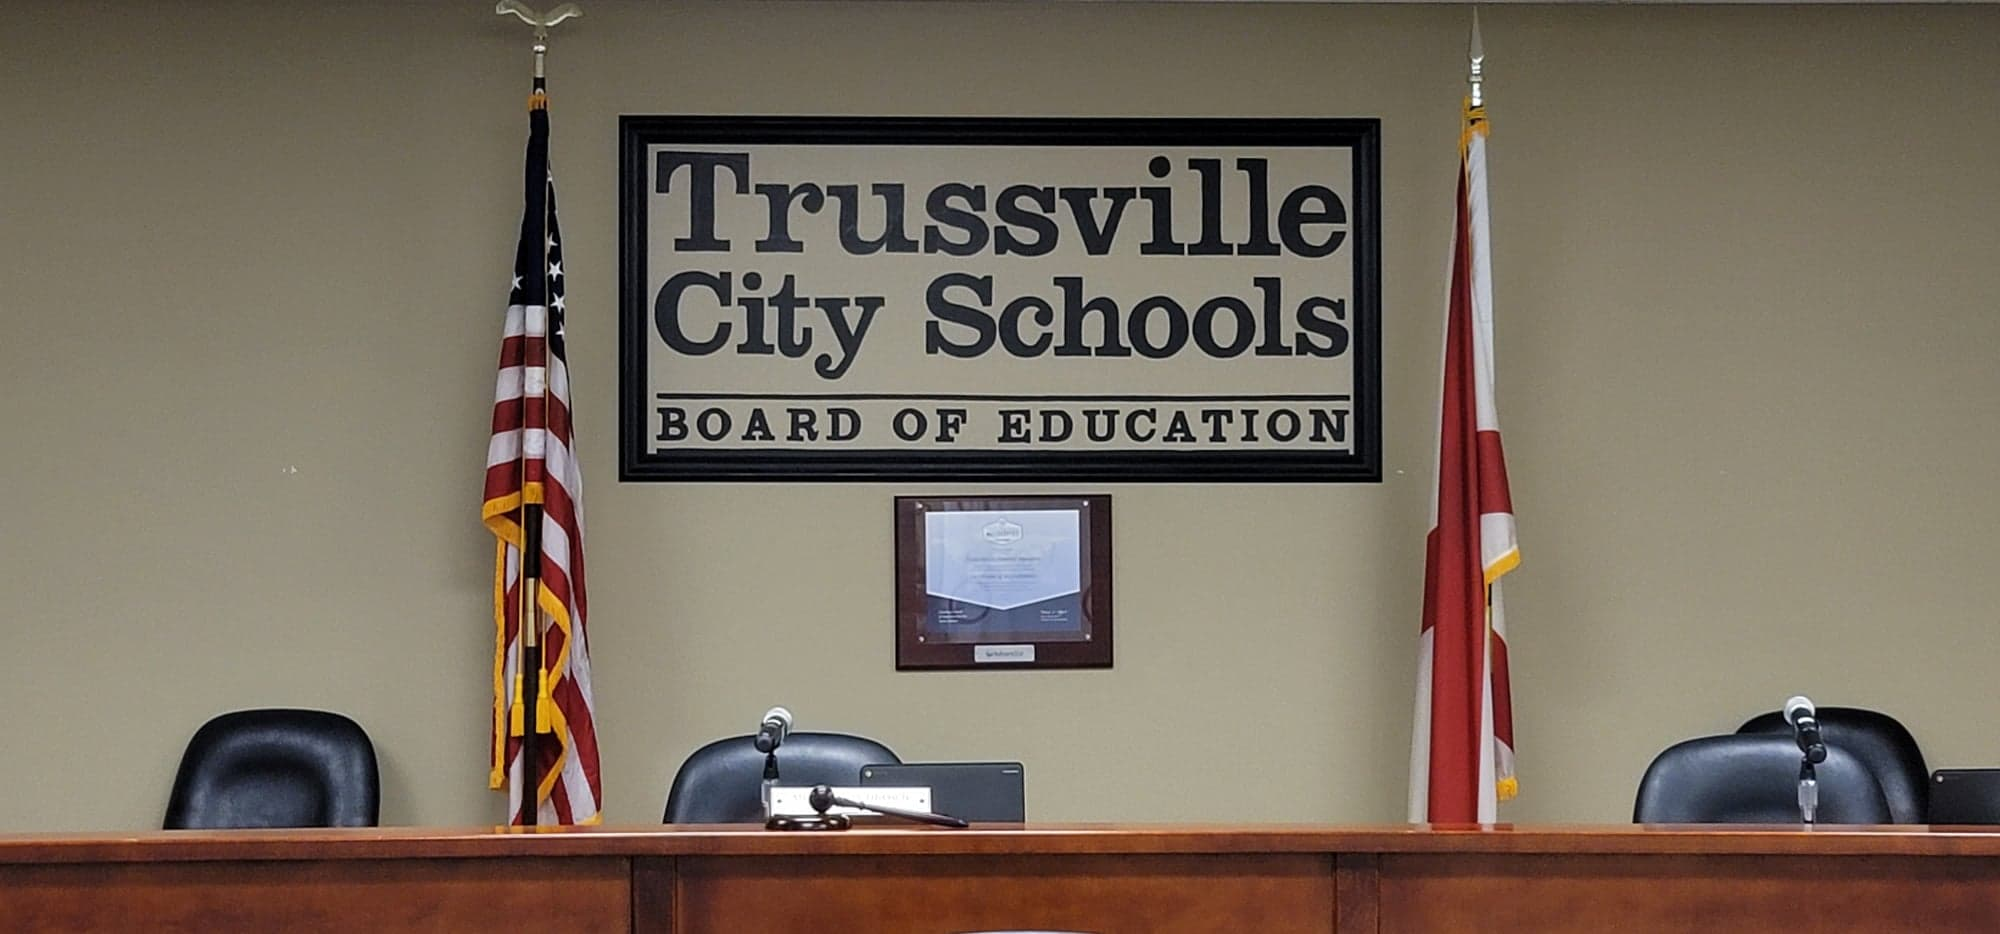 Trussville City Schools BOE recognizes basketball coach, discusses school year calendars